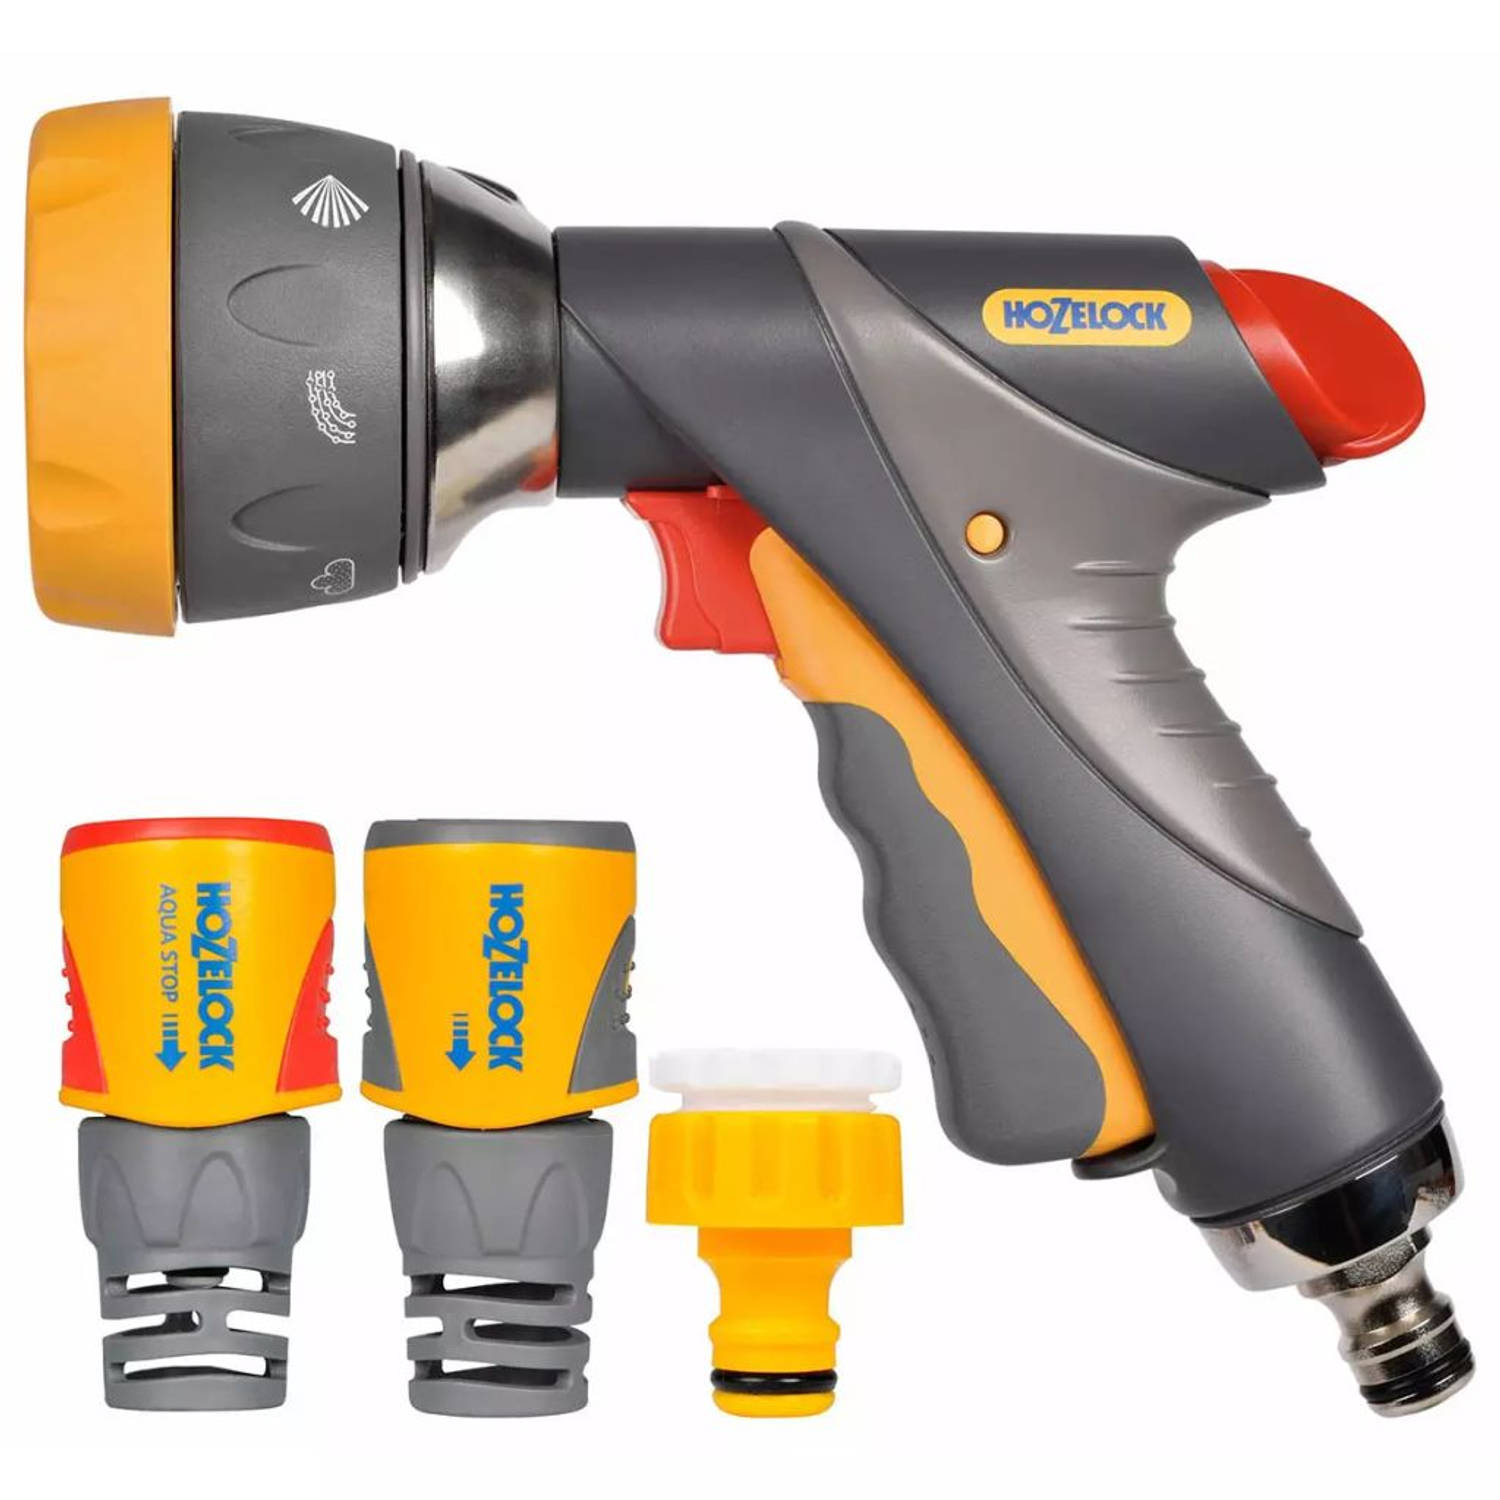 Hozelock Sproeipistool Starterset Multi Spray Pro 2371 0000